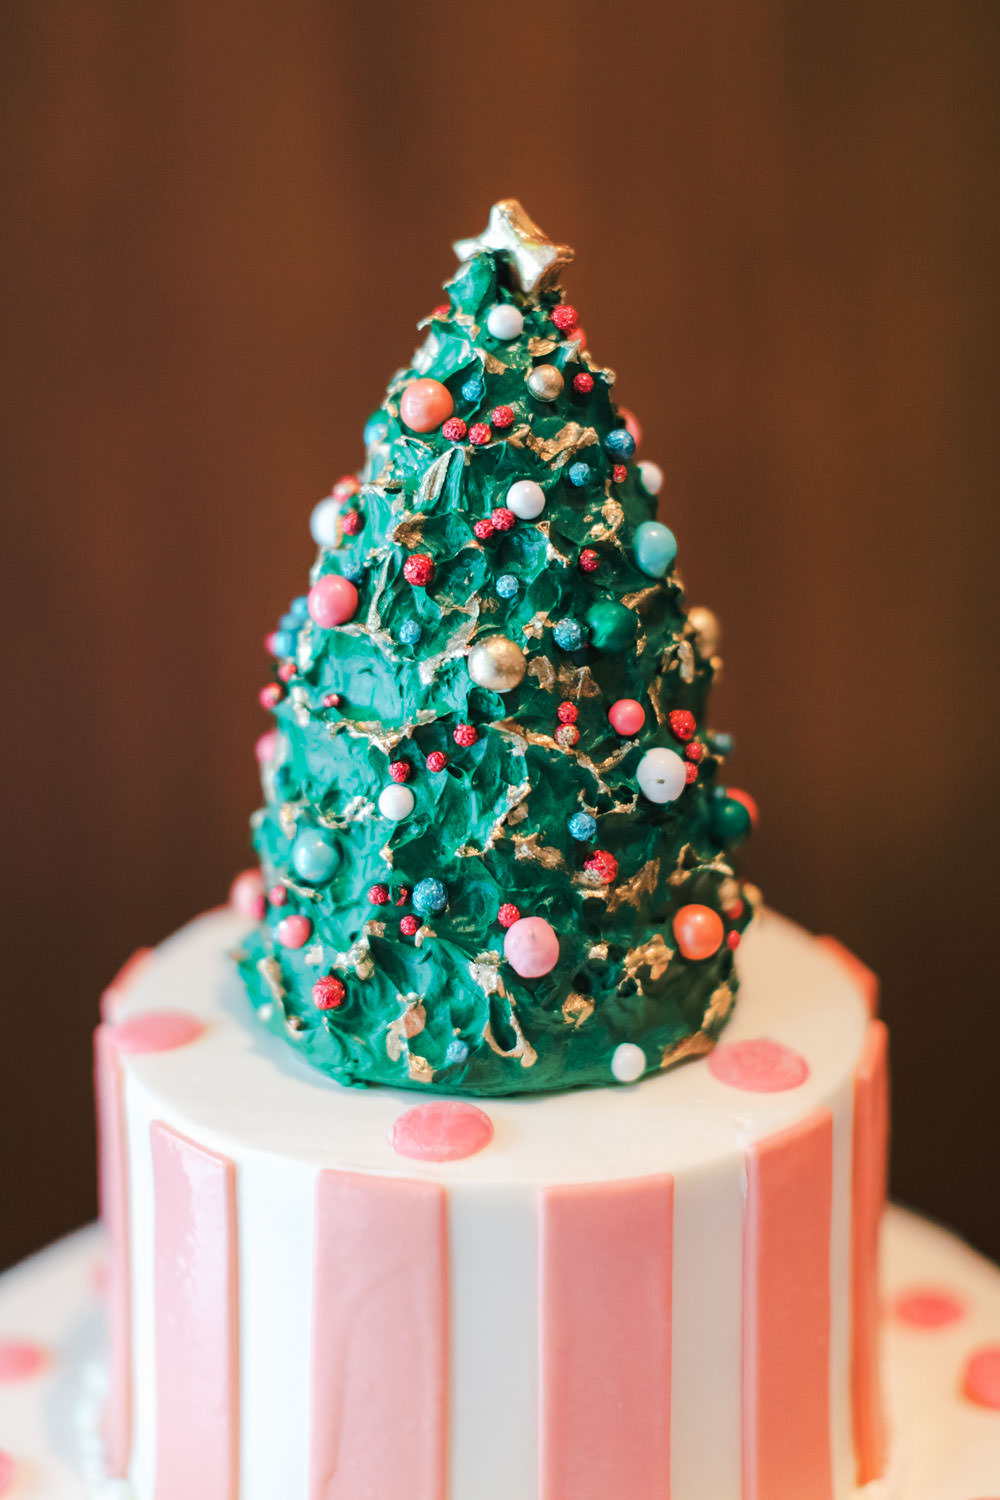 Tropical Christmas bridal shower cake with pink and white stripes and palm tree print with Christmas tree topper, Cavin Elizabeth Photography